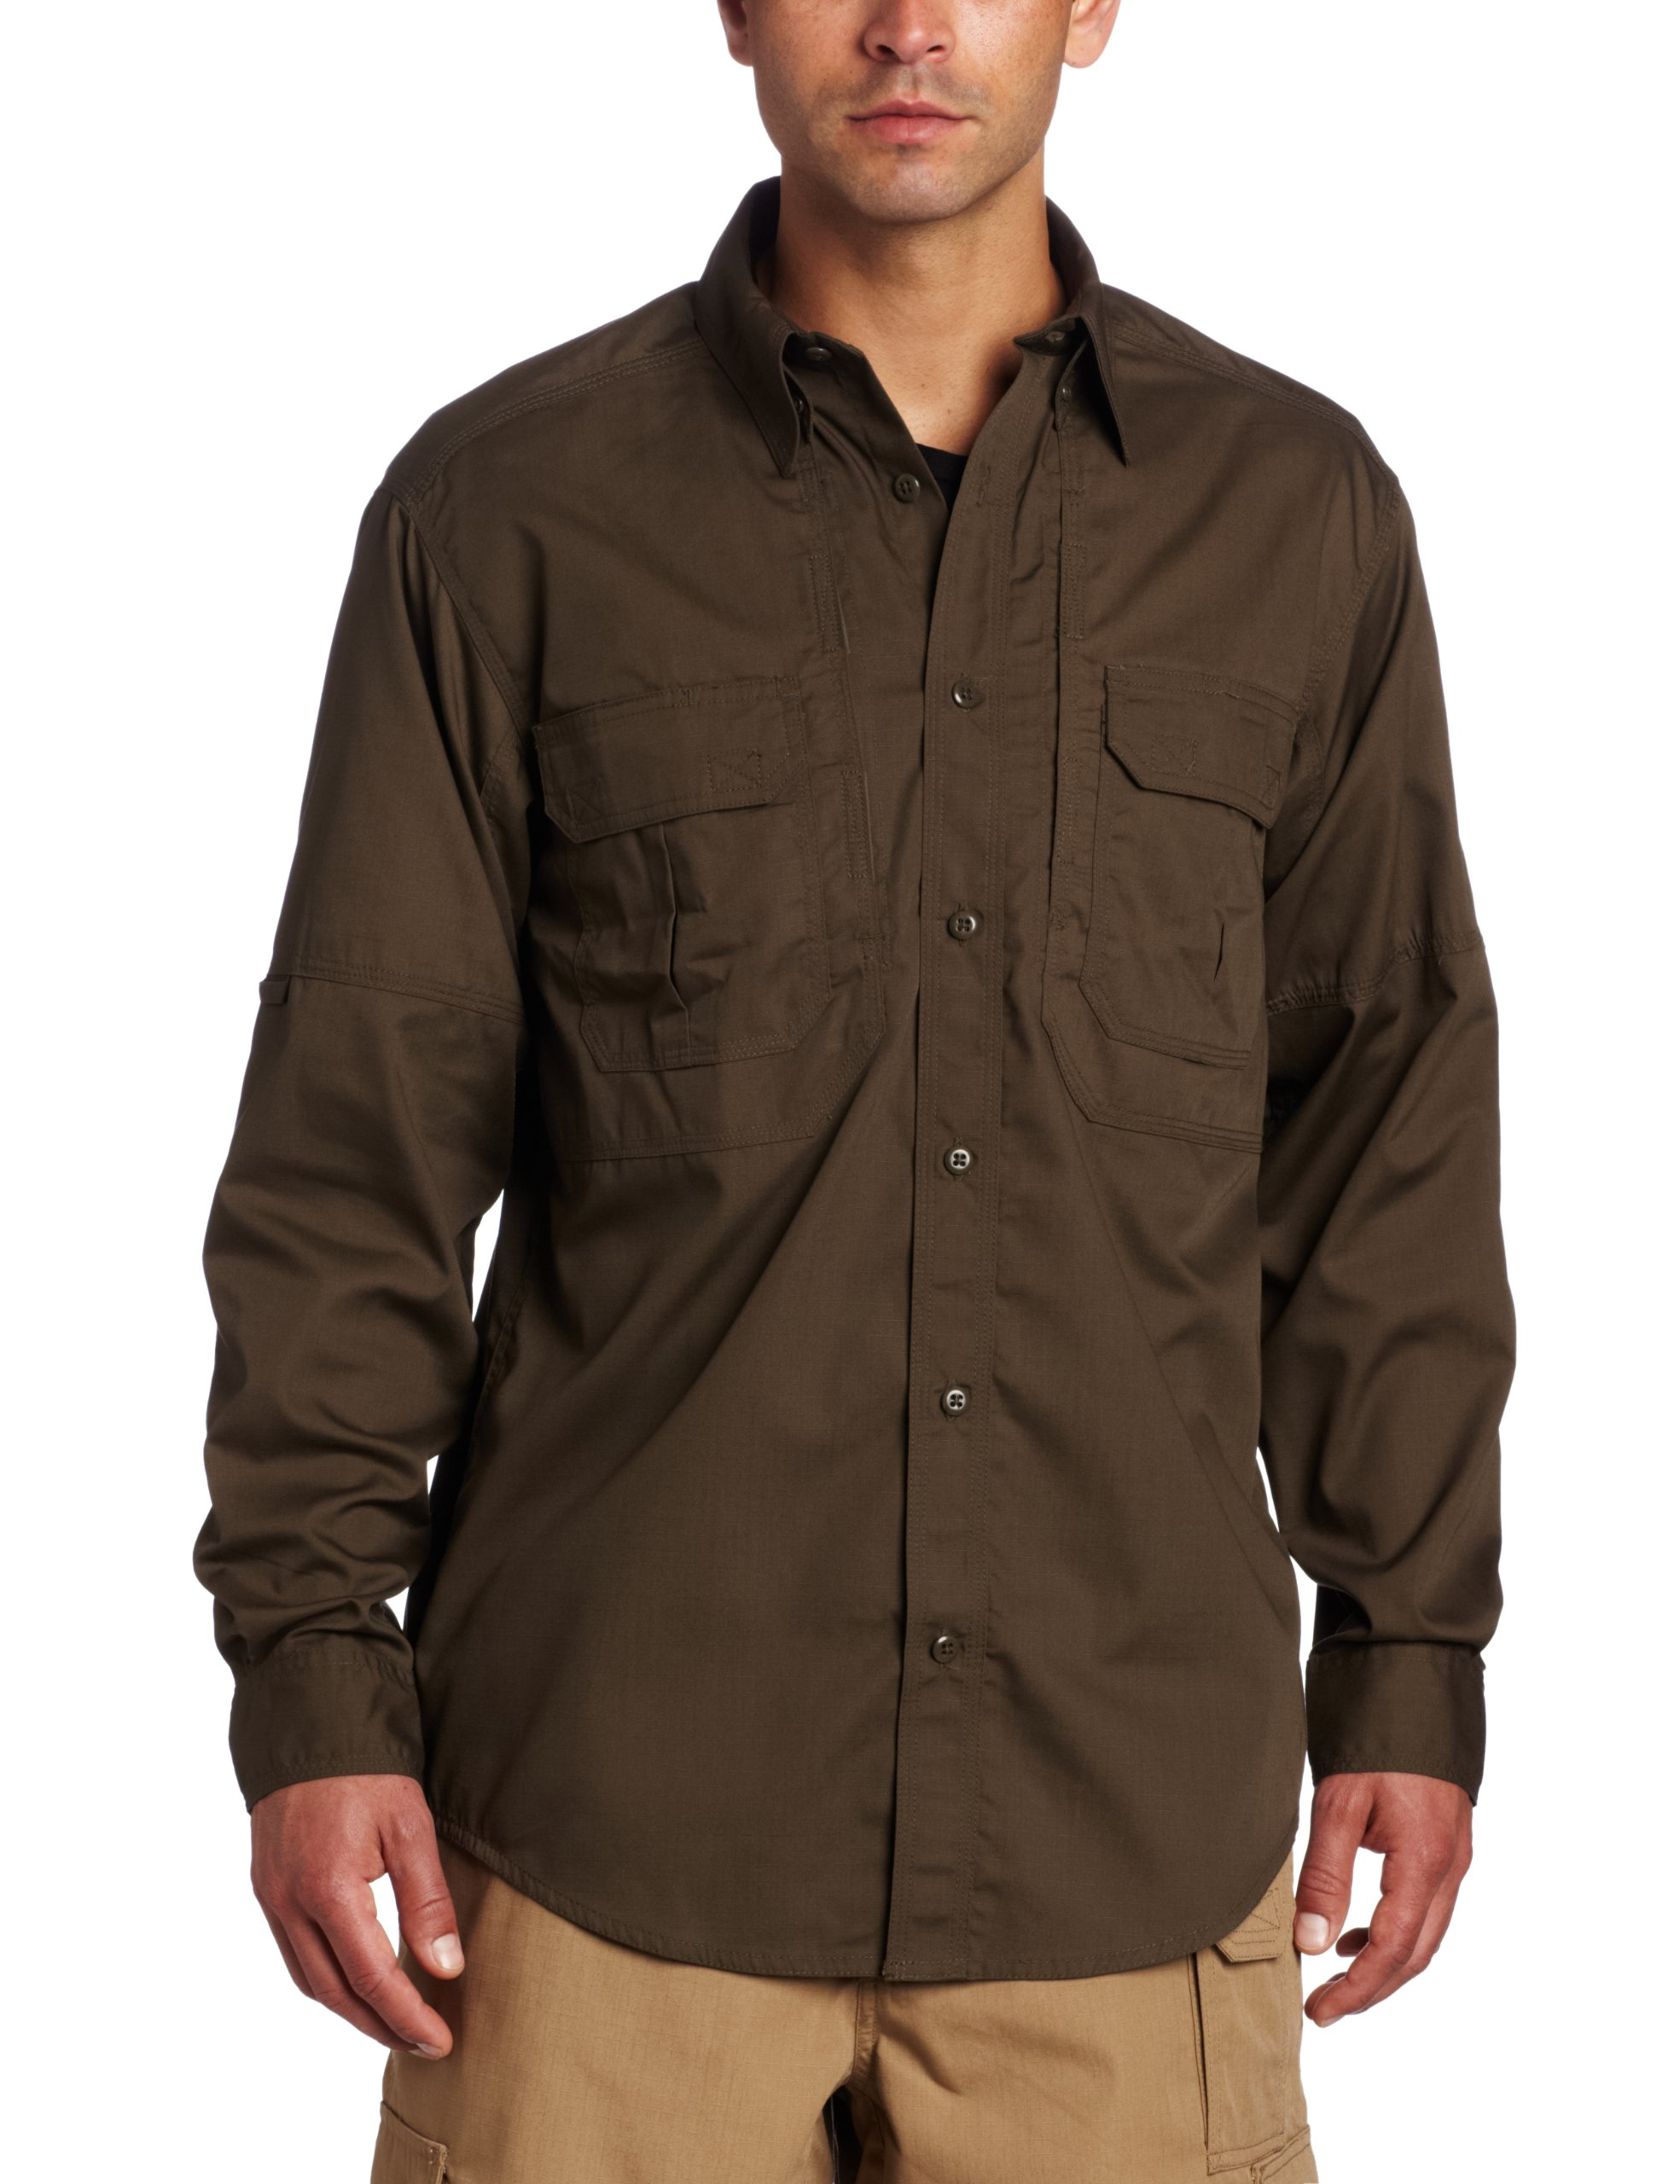 5.11 Tactical TacLite Professional Long Sleeve Shirt, Tundra, Large by 5.11 (Image #1)